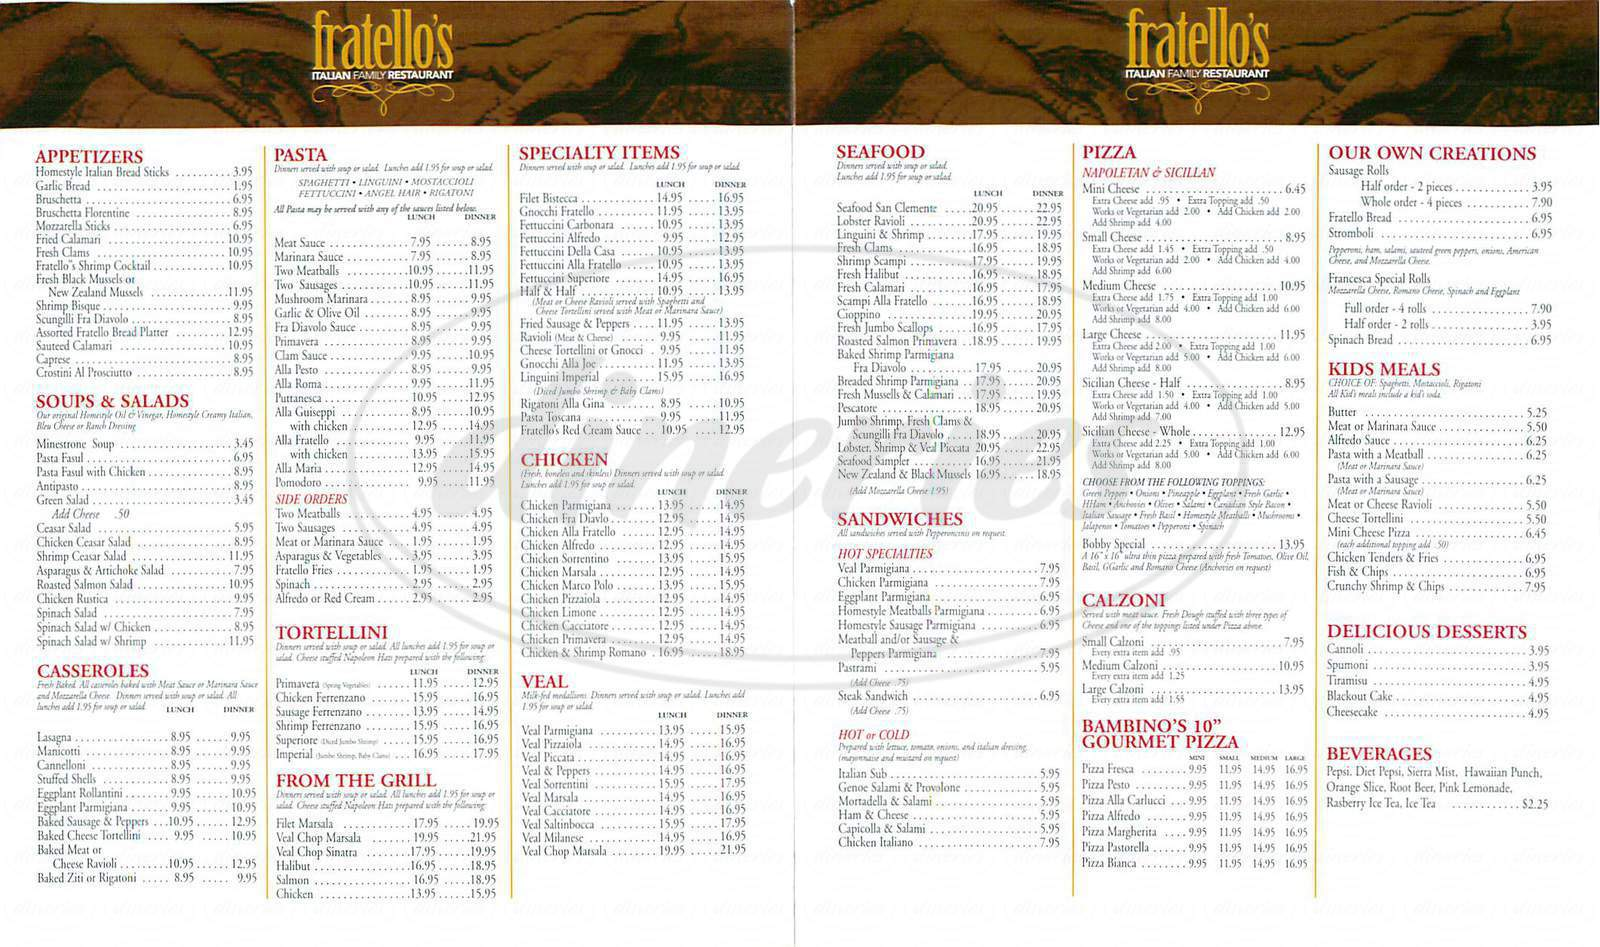 menu for Fratello's Italian Restaurant